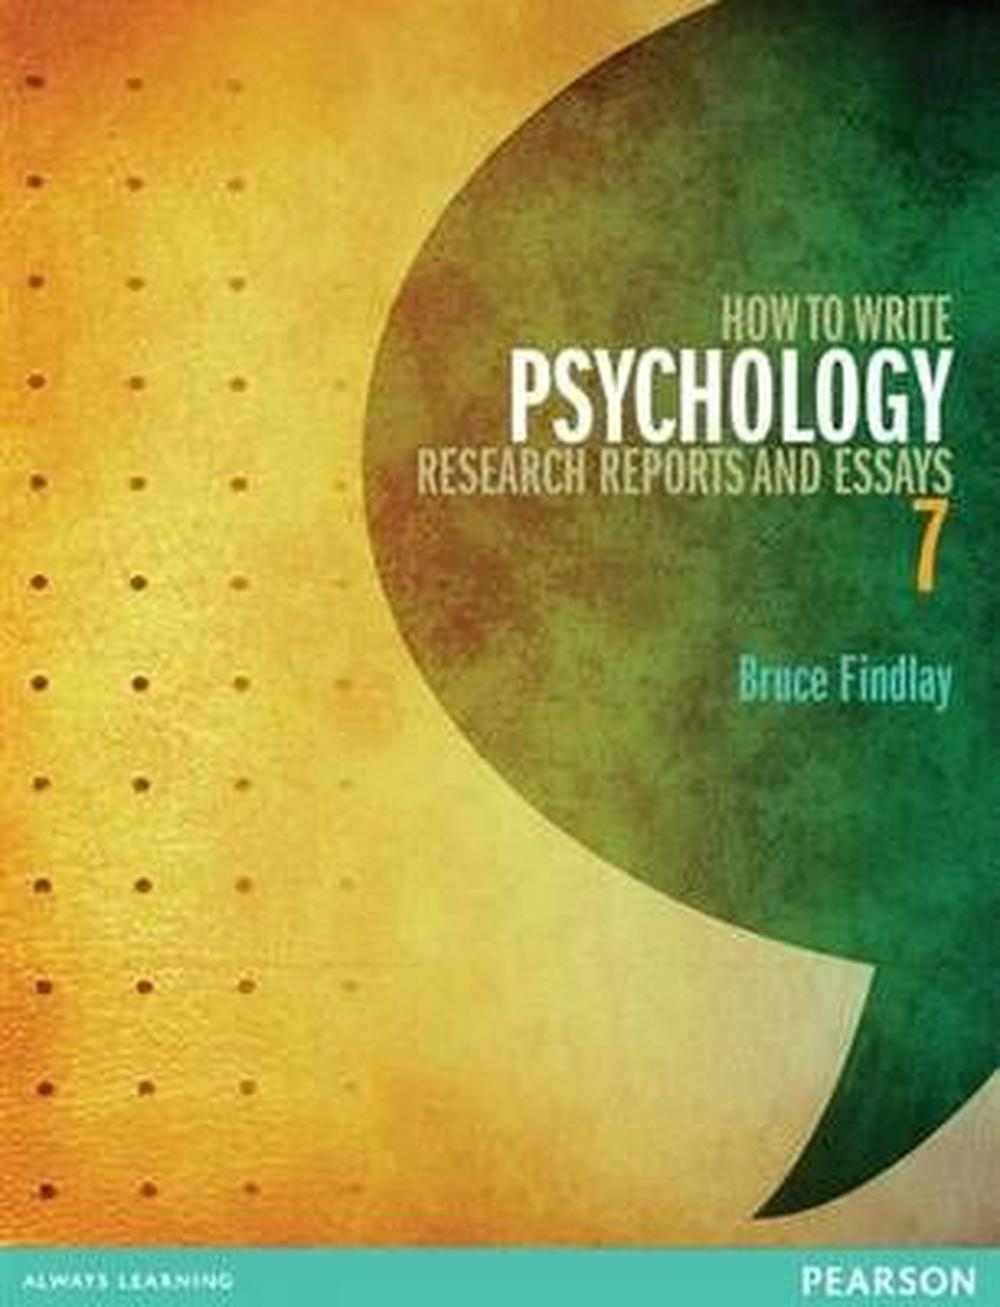 How to Write Psychology Research Reports and Essays, 7th Edition